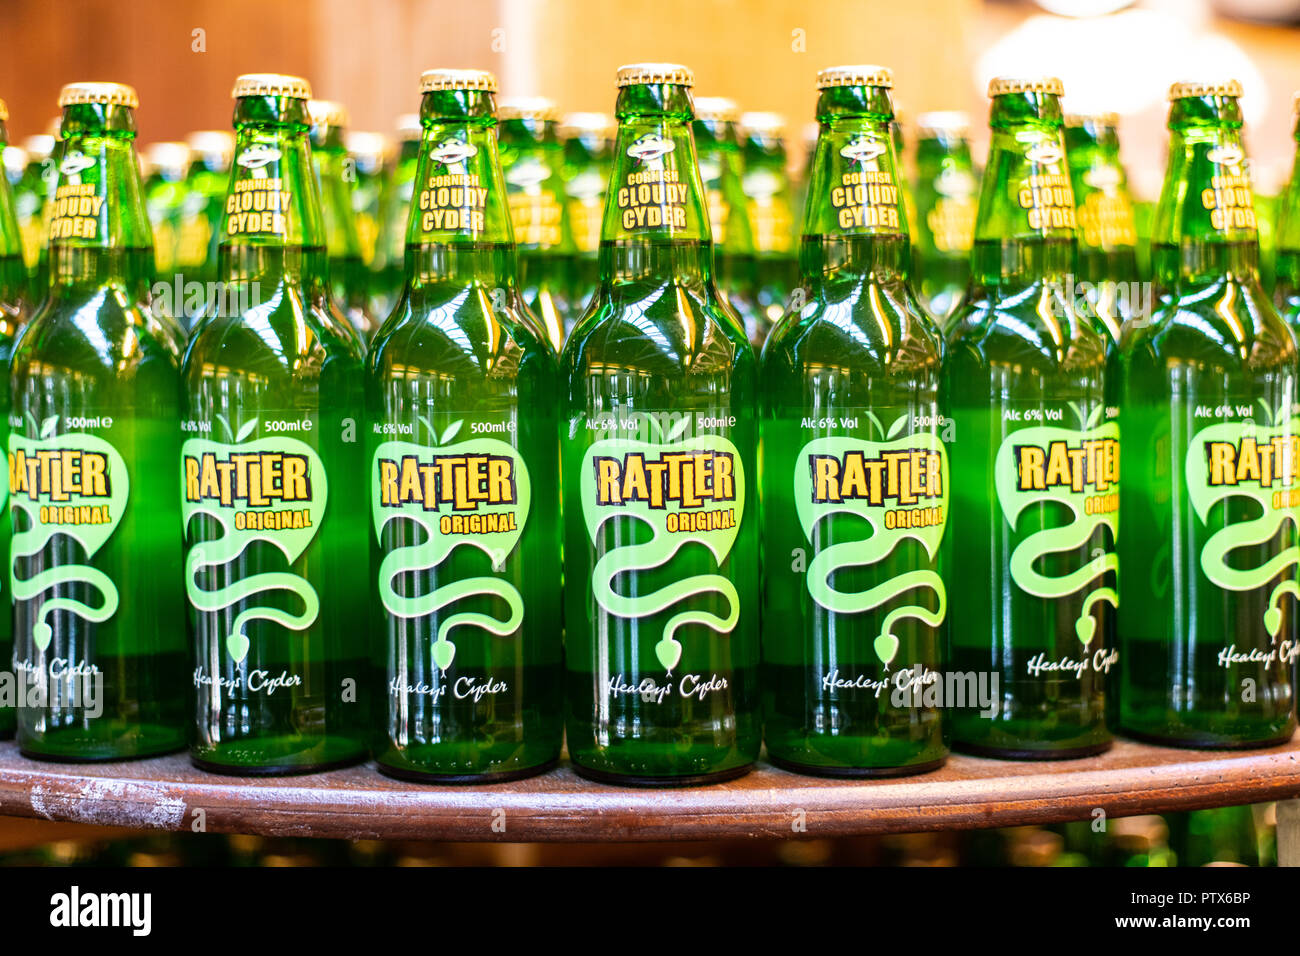 Bottles of Rattler produced by Cornish Cyder farm, Healeys. - Stock Image